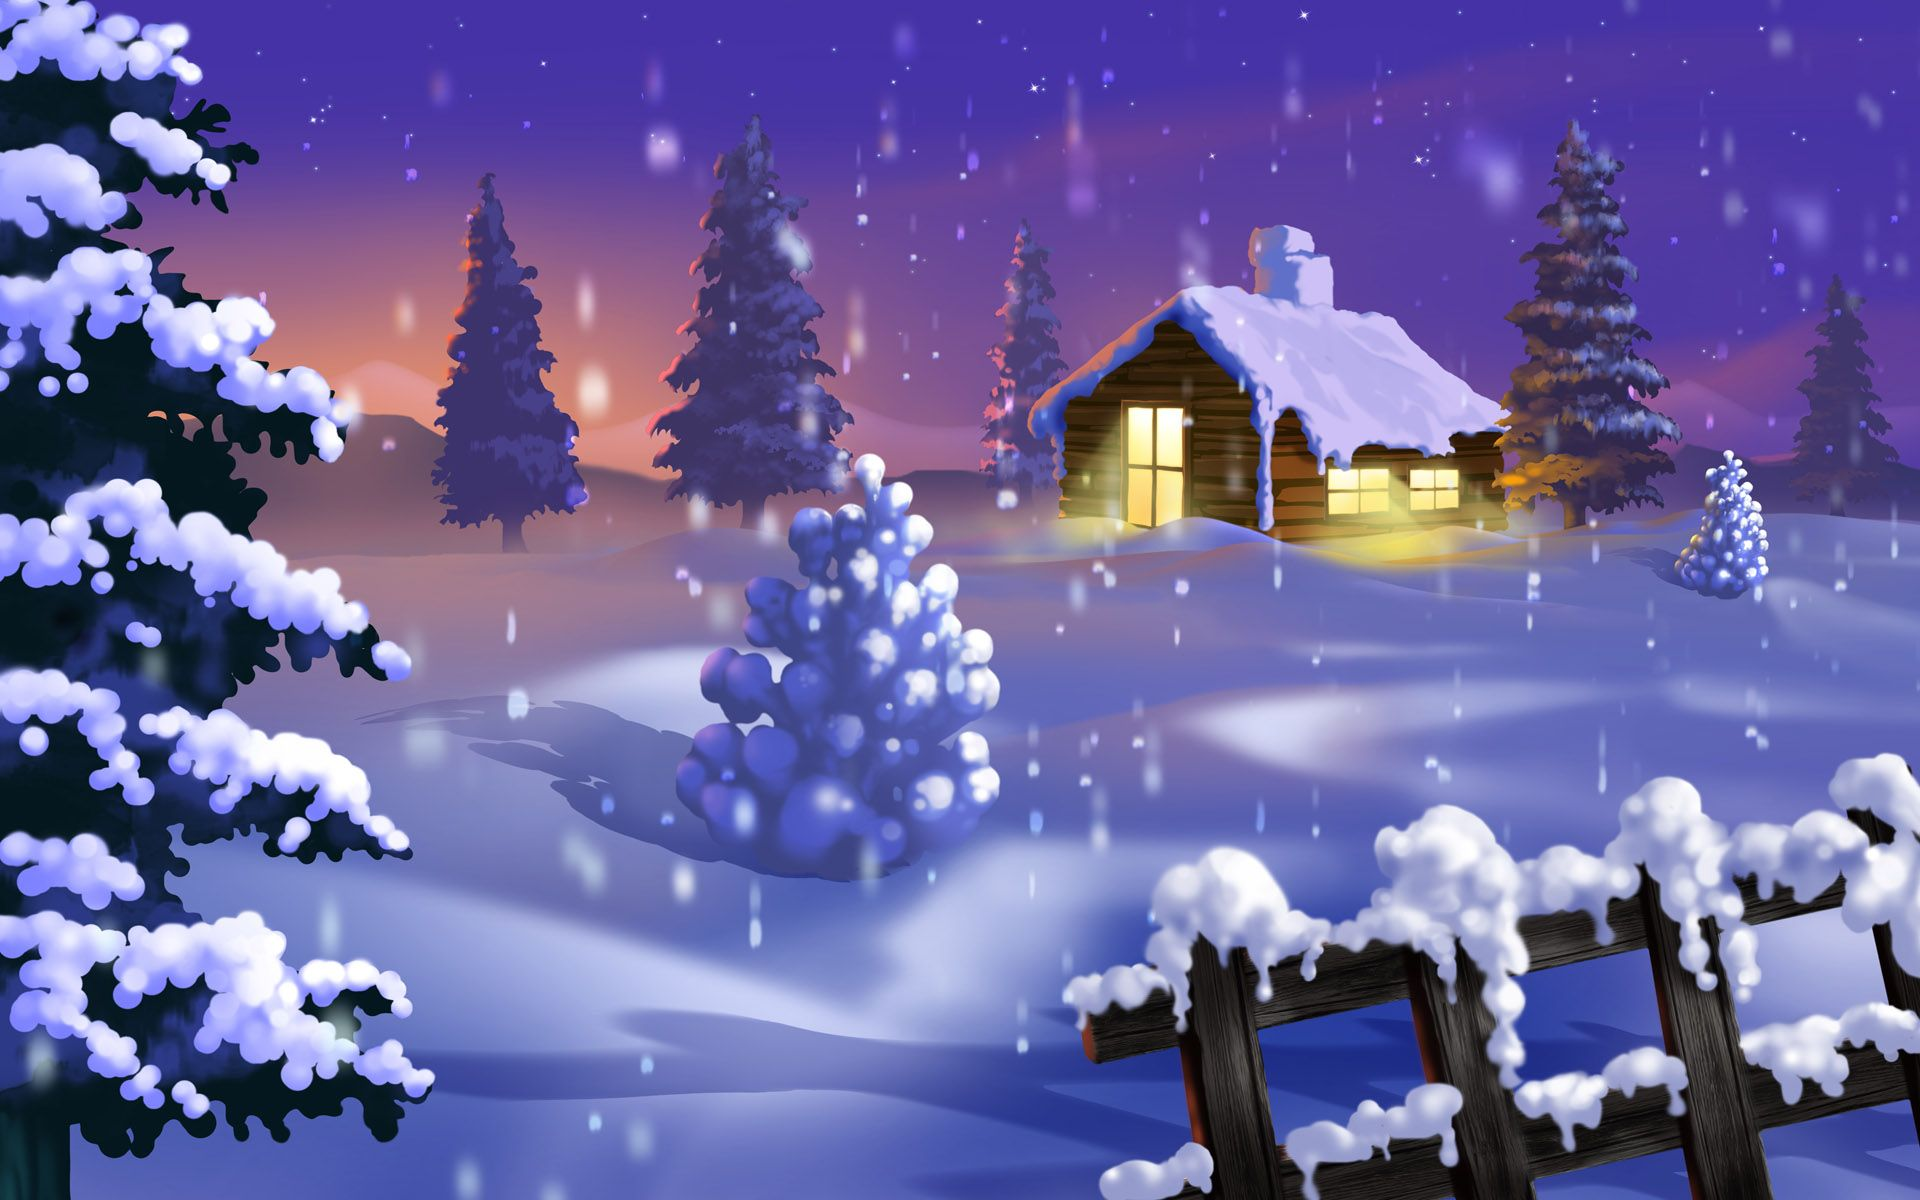 Beautiful Christmas And Winter Wallpapers For Your Desktop Noupe Christmas Wallpaper Hd Christmas Wallpaper Free Christmas Desktop Wallpaper